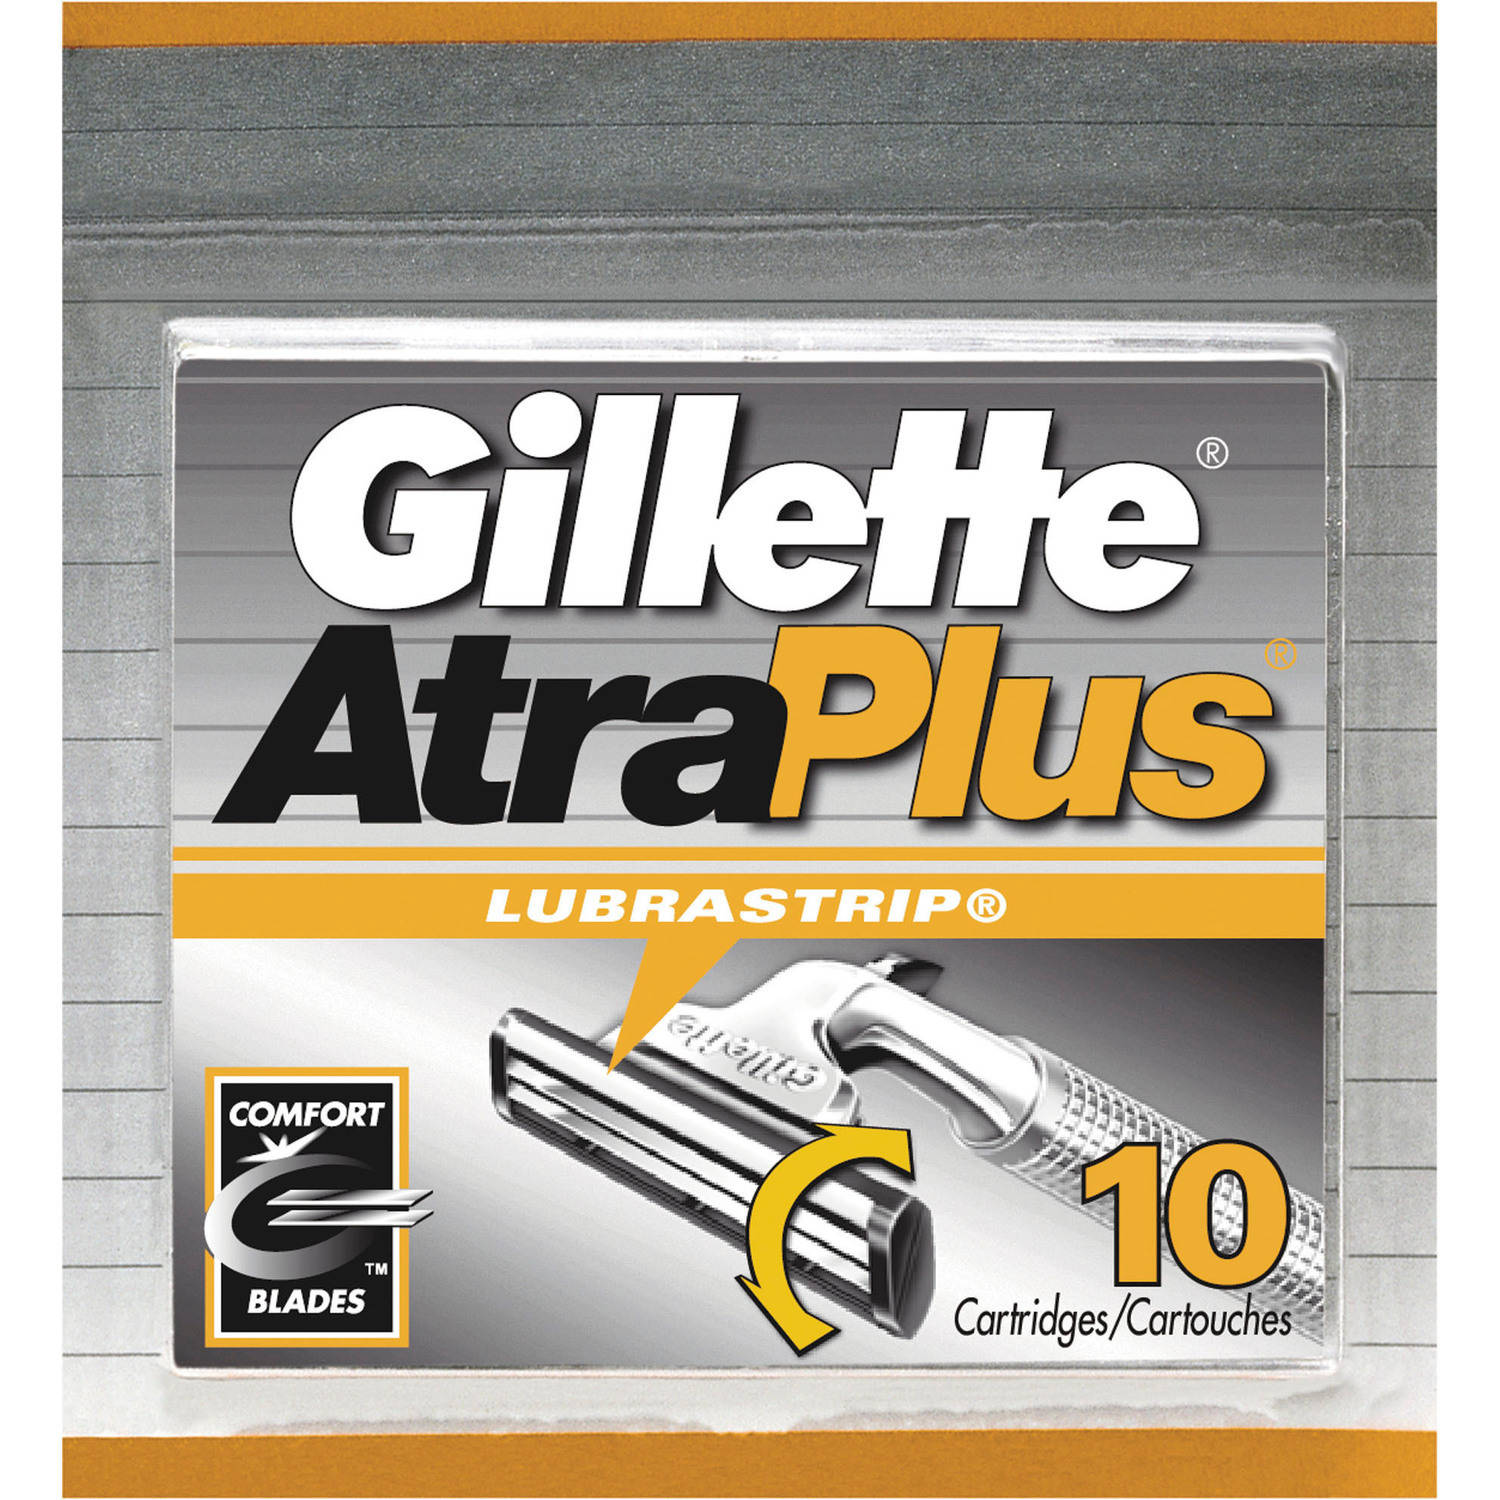 Gillette Atraplus Cartridges With Lubrastrip, 10 count